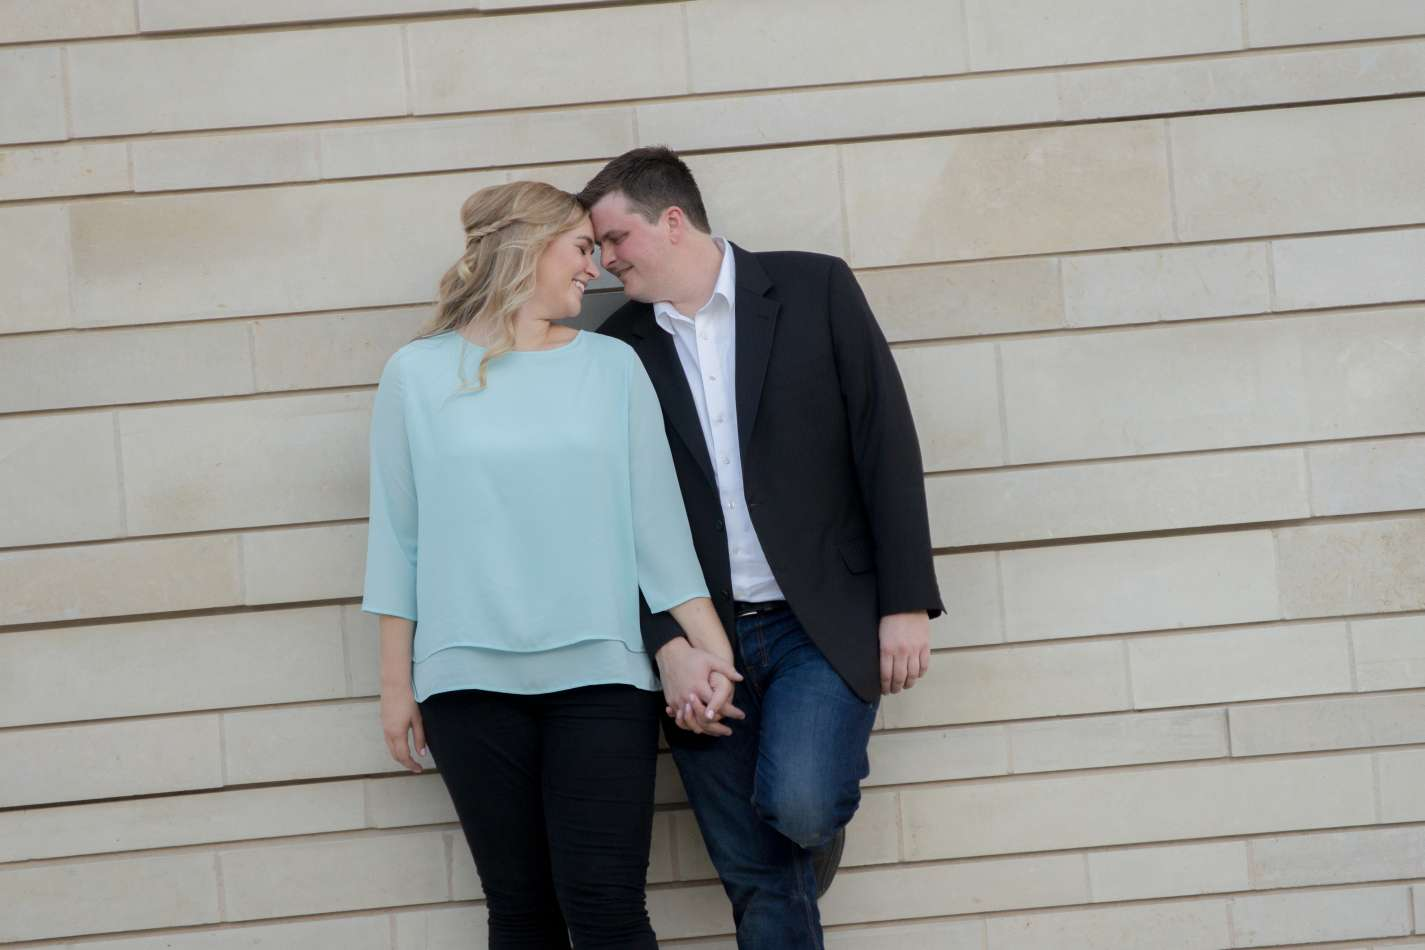 HighDot Studios - Jill and Sean - Engagement Session - Austin - Hope Outdoor Gallery - Long Center (20)